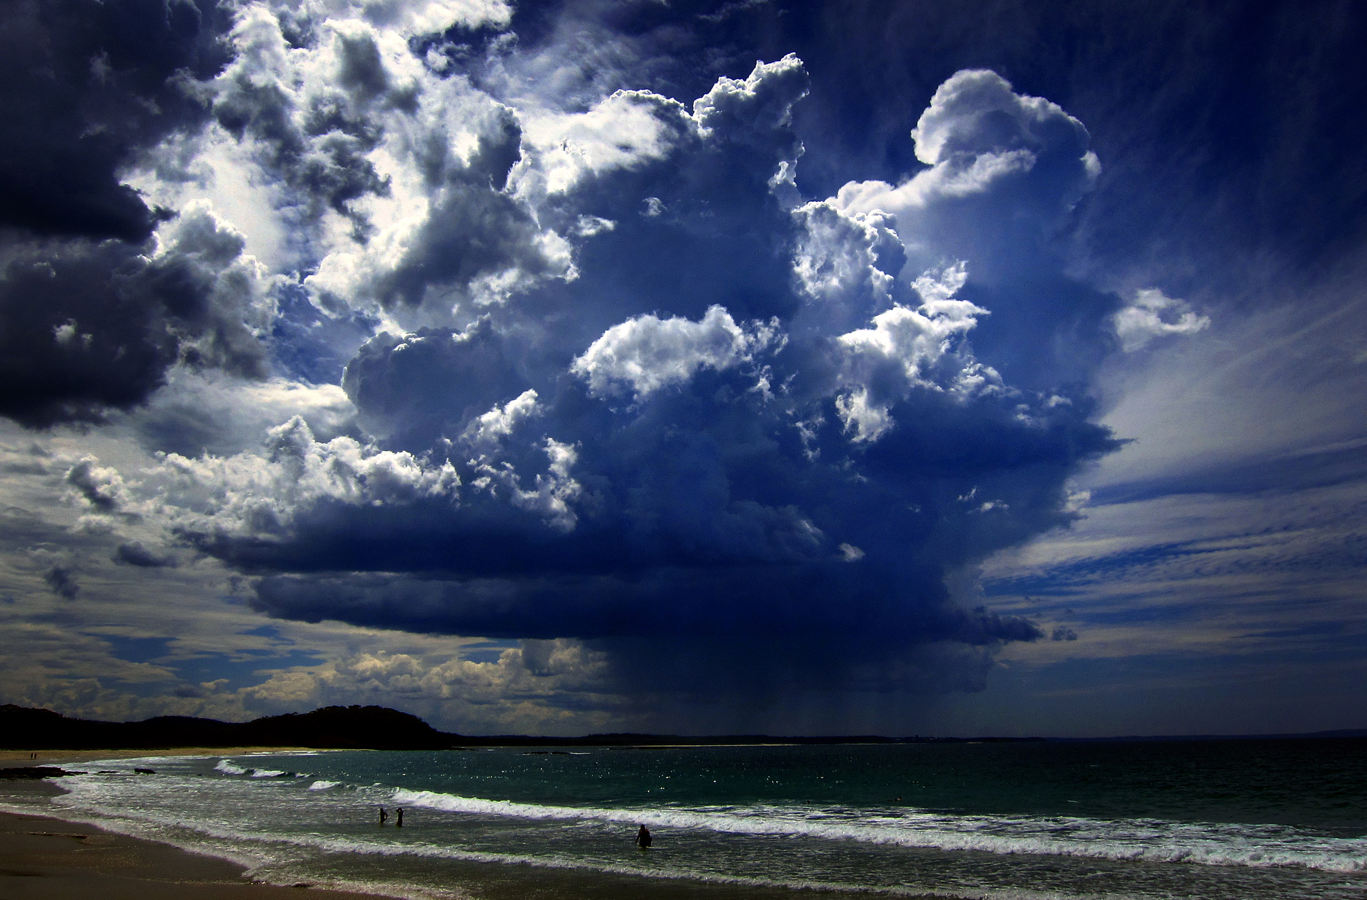 thunderstorms in sydney australia - photo#13